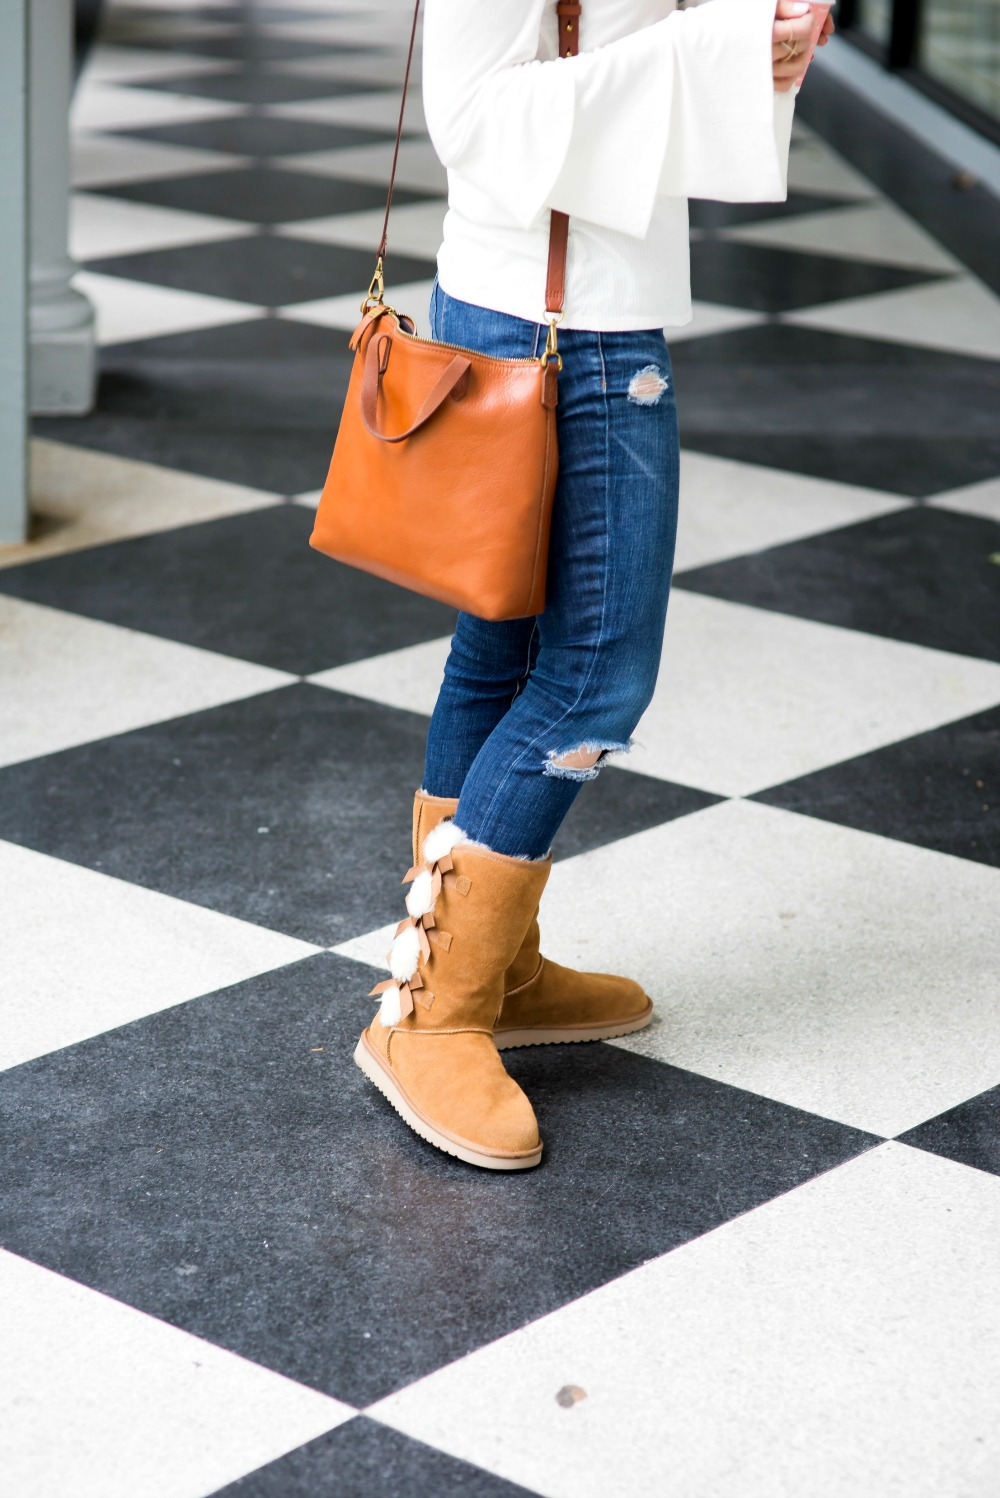 Cozy cute winter style - winter boots edition by popular Florida style blogger The Modern Savvy